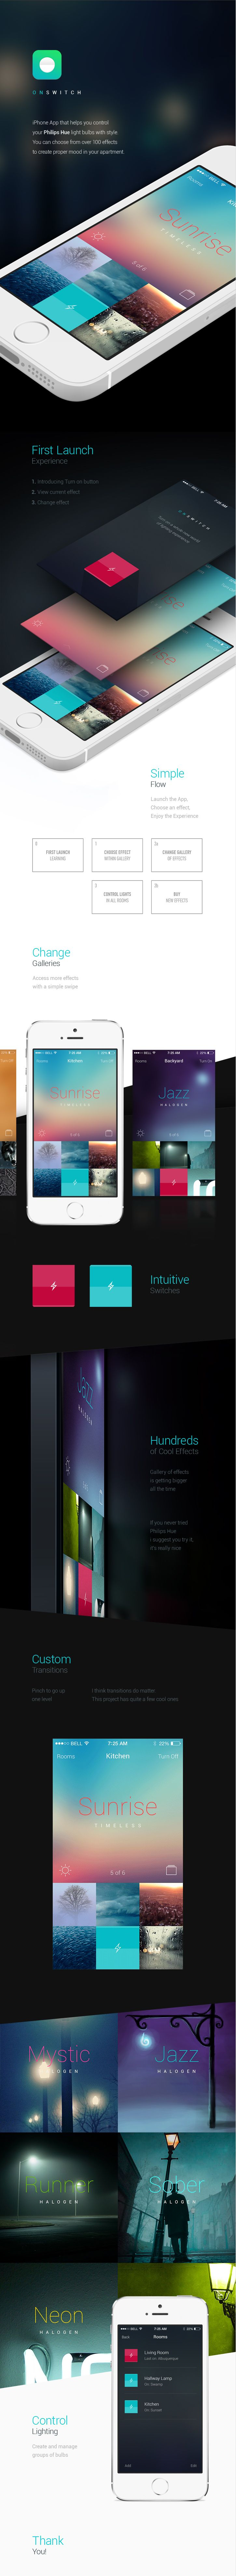 Sunrise - Application that lets you control Philips Hue light bulbs. #ui #interface #mobile #ux